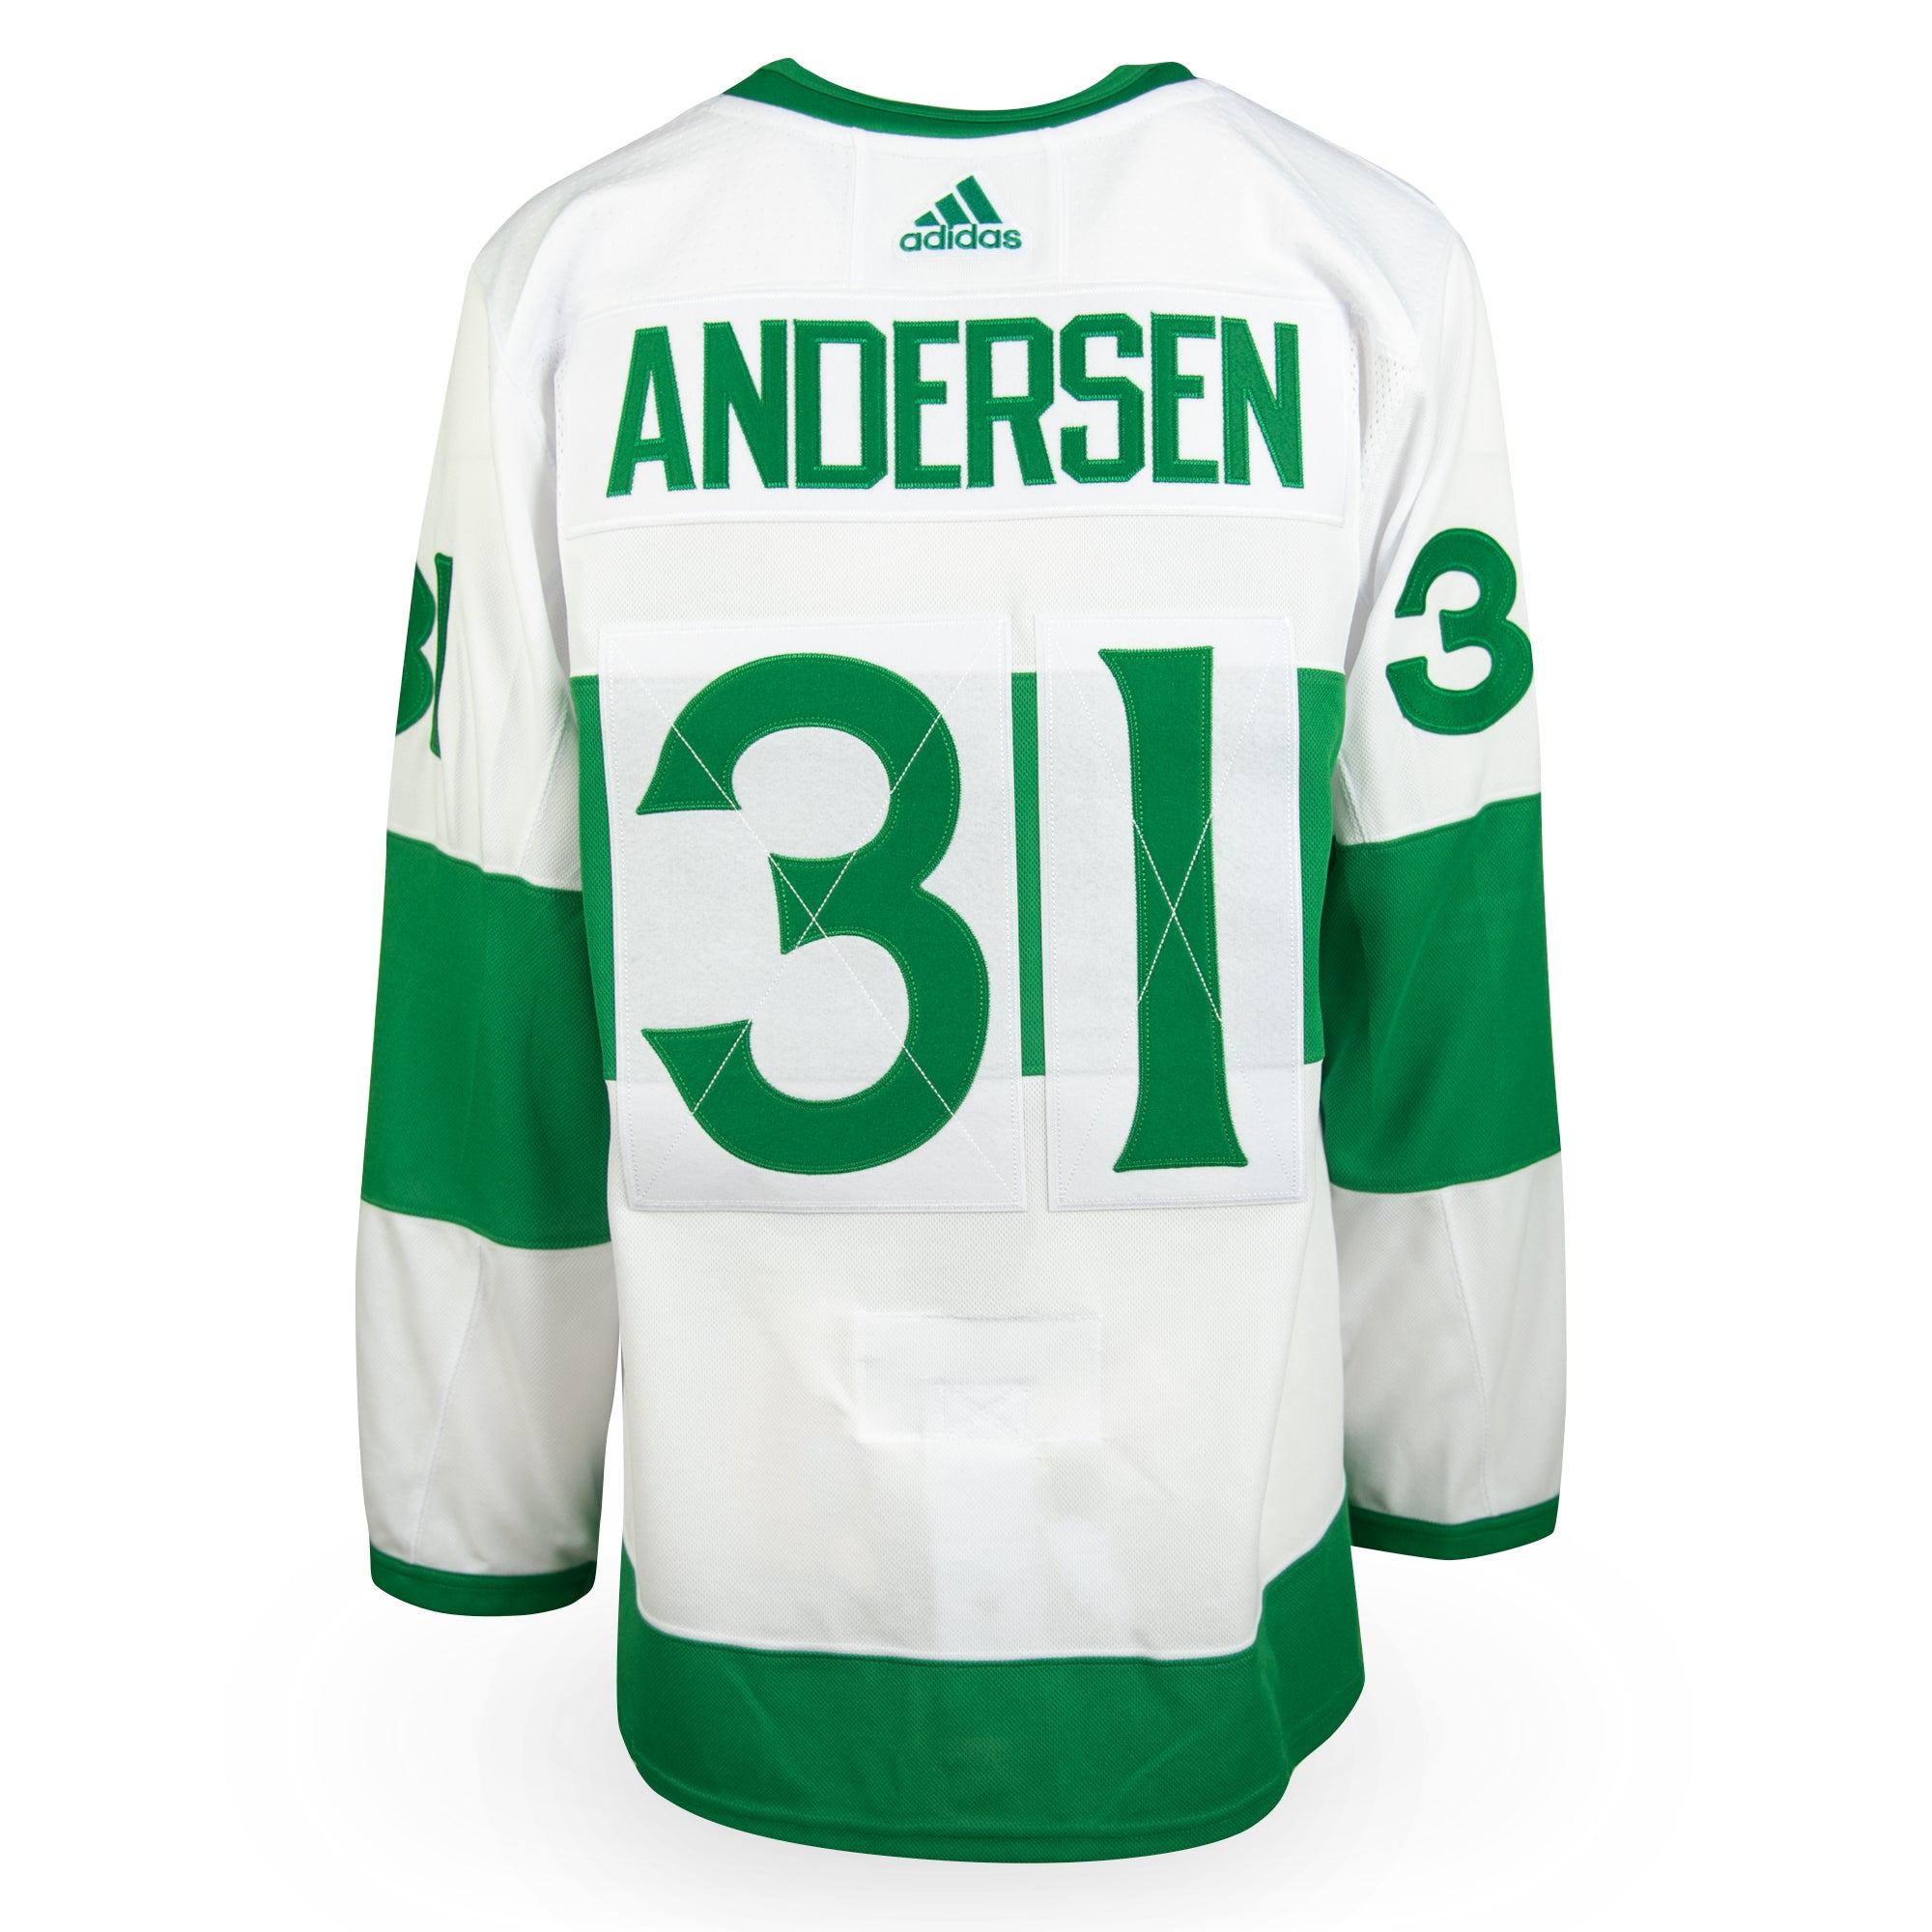 St. Pats Adidas Men's Authentic Jersey - ANDERSEN